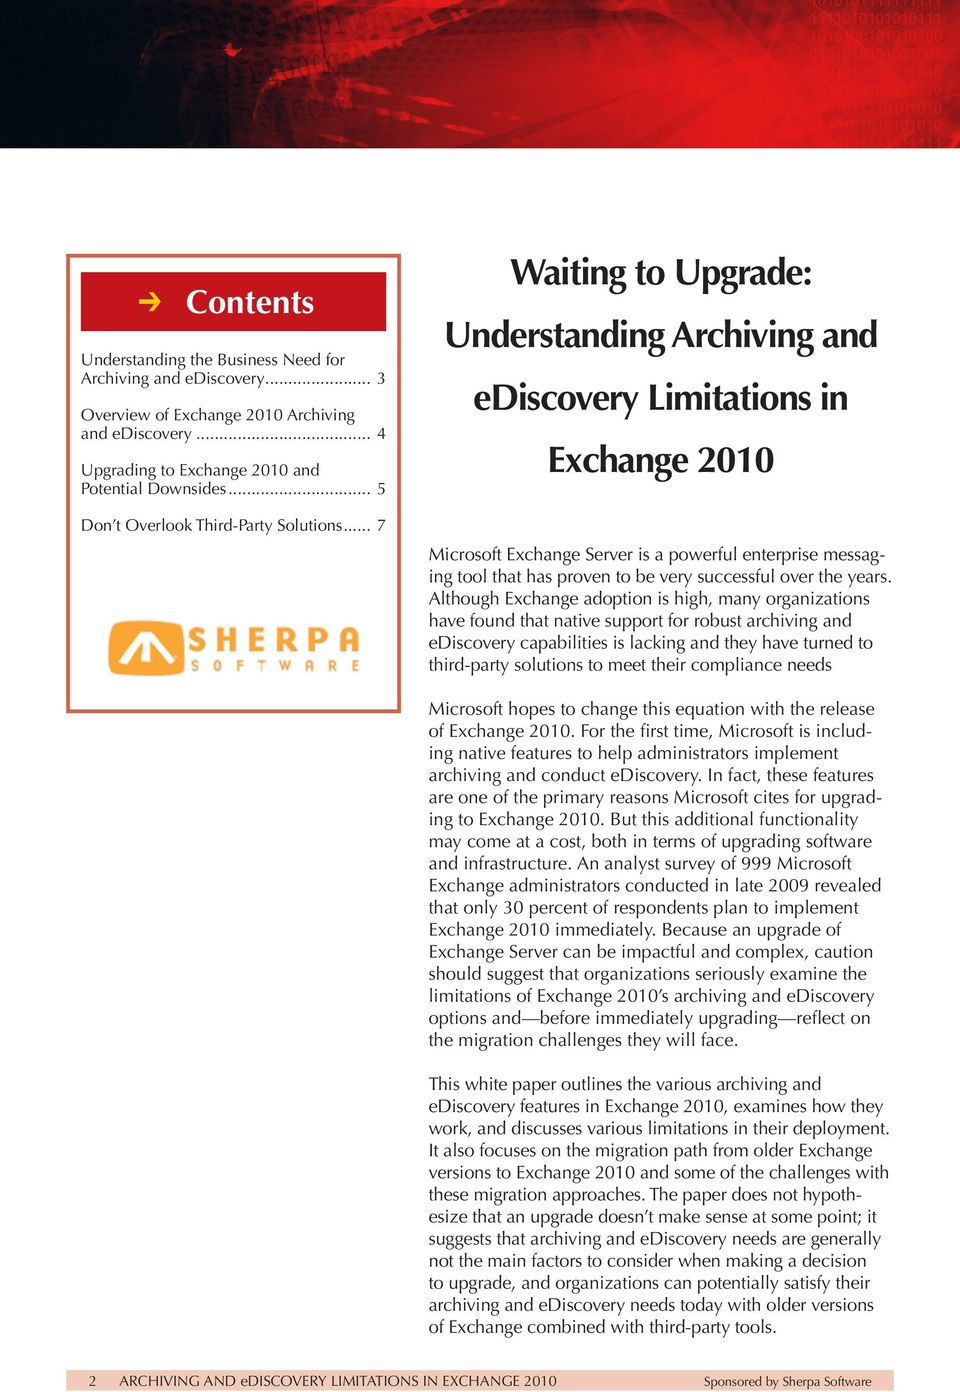 .. 7 Waiting to Upgrade: Understanding Archiving and ediscovery Limitations in Exchange 2010 Microsoft Exchange Server is a powerful enterprise messaging tool that has proven to be very successful